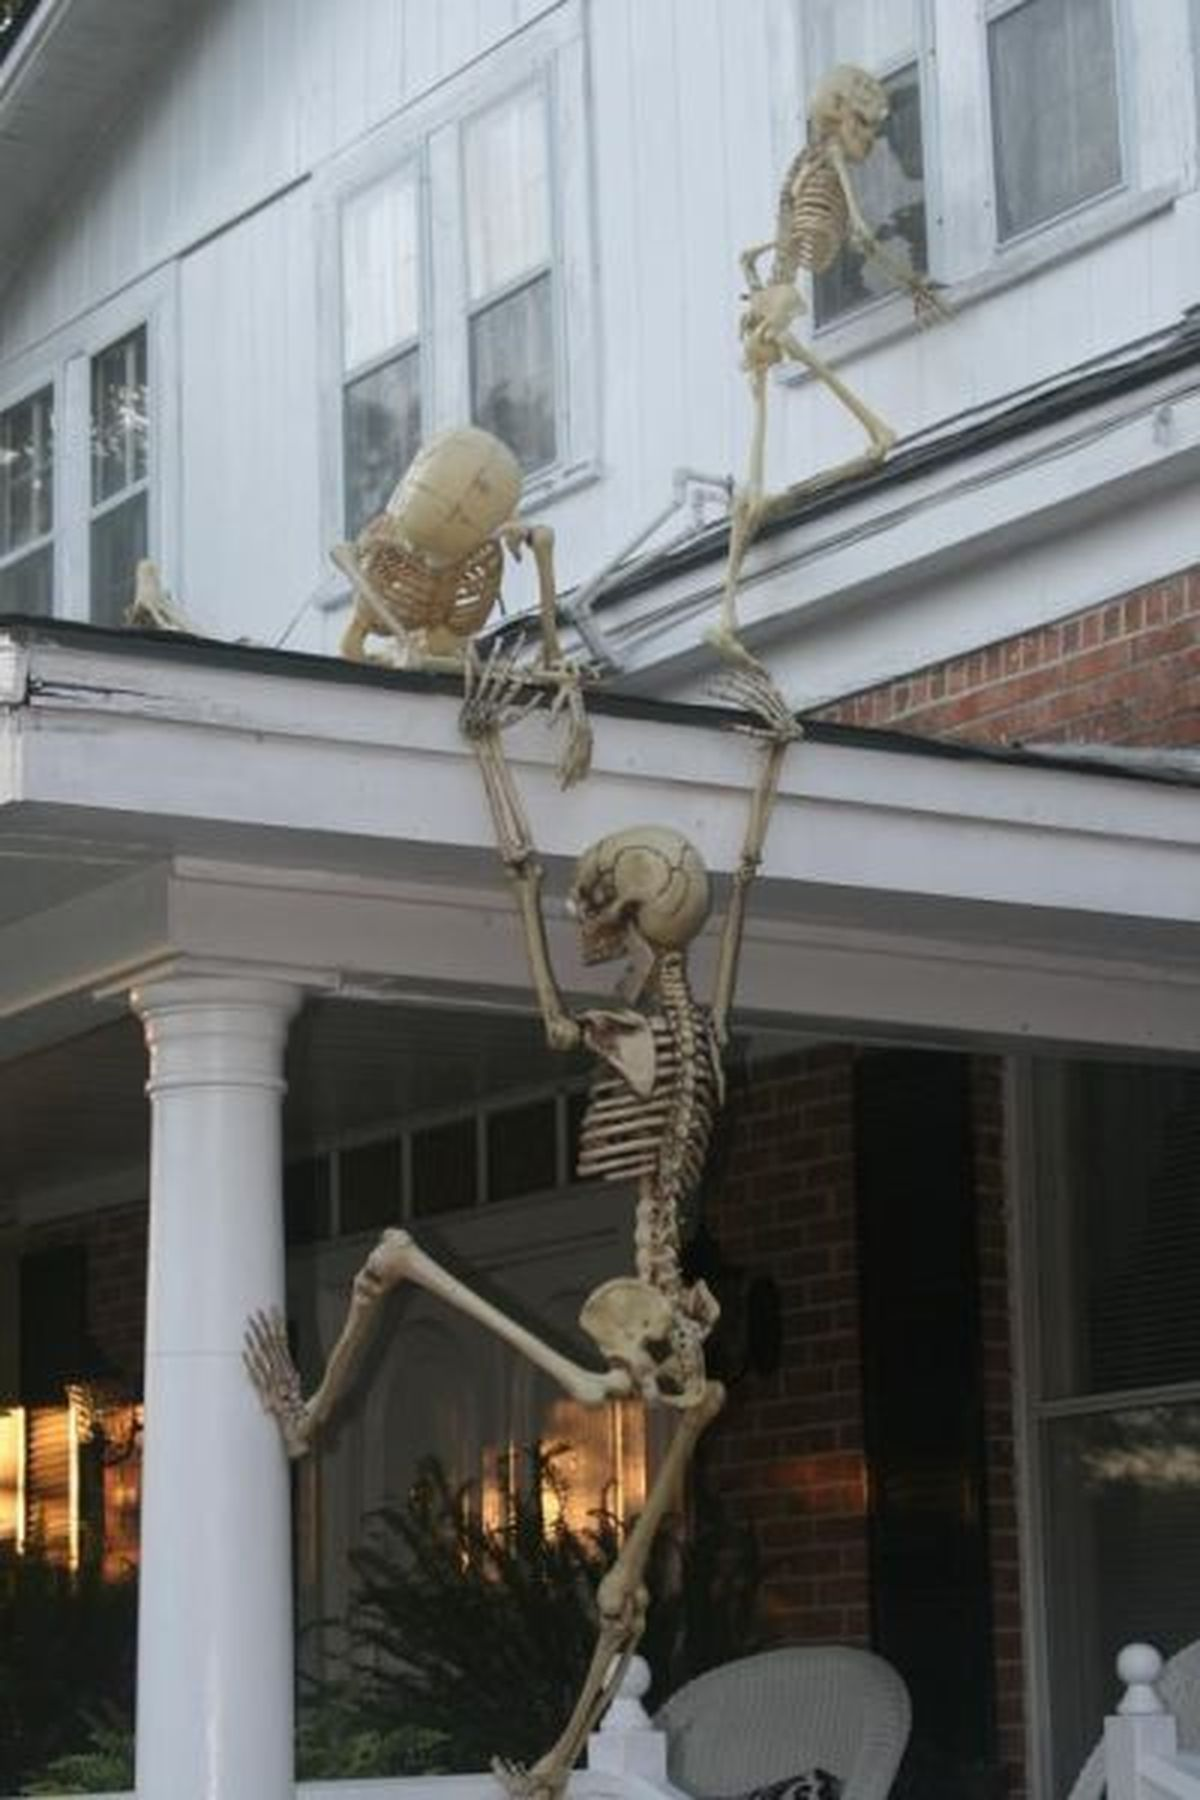 Indoor outdoor halloween skeleton decorations ideas for Odd decorations for home